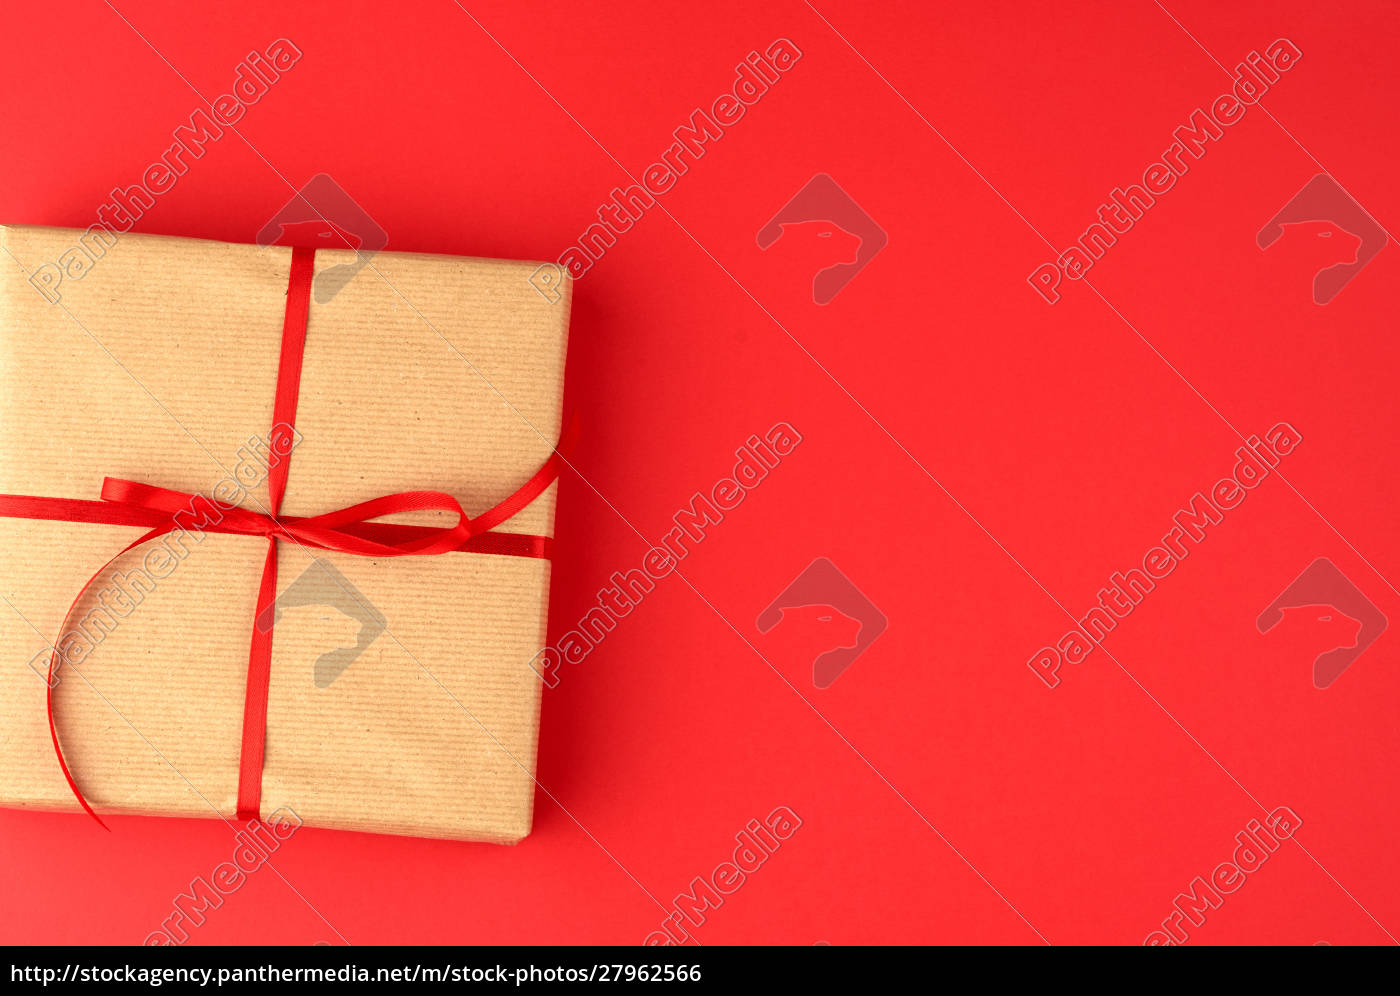 box, wrapped, in, brown, kraft, paper - 27962566